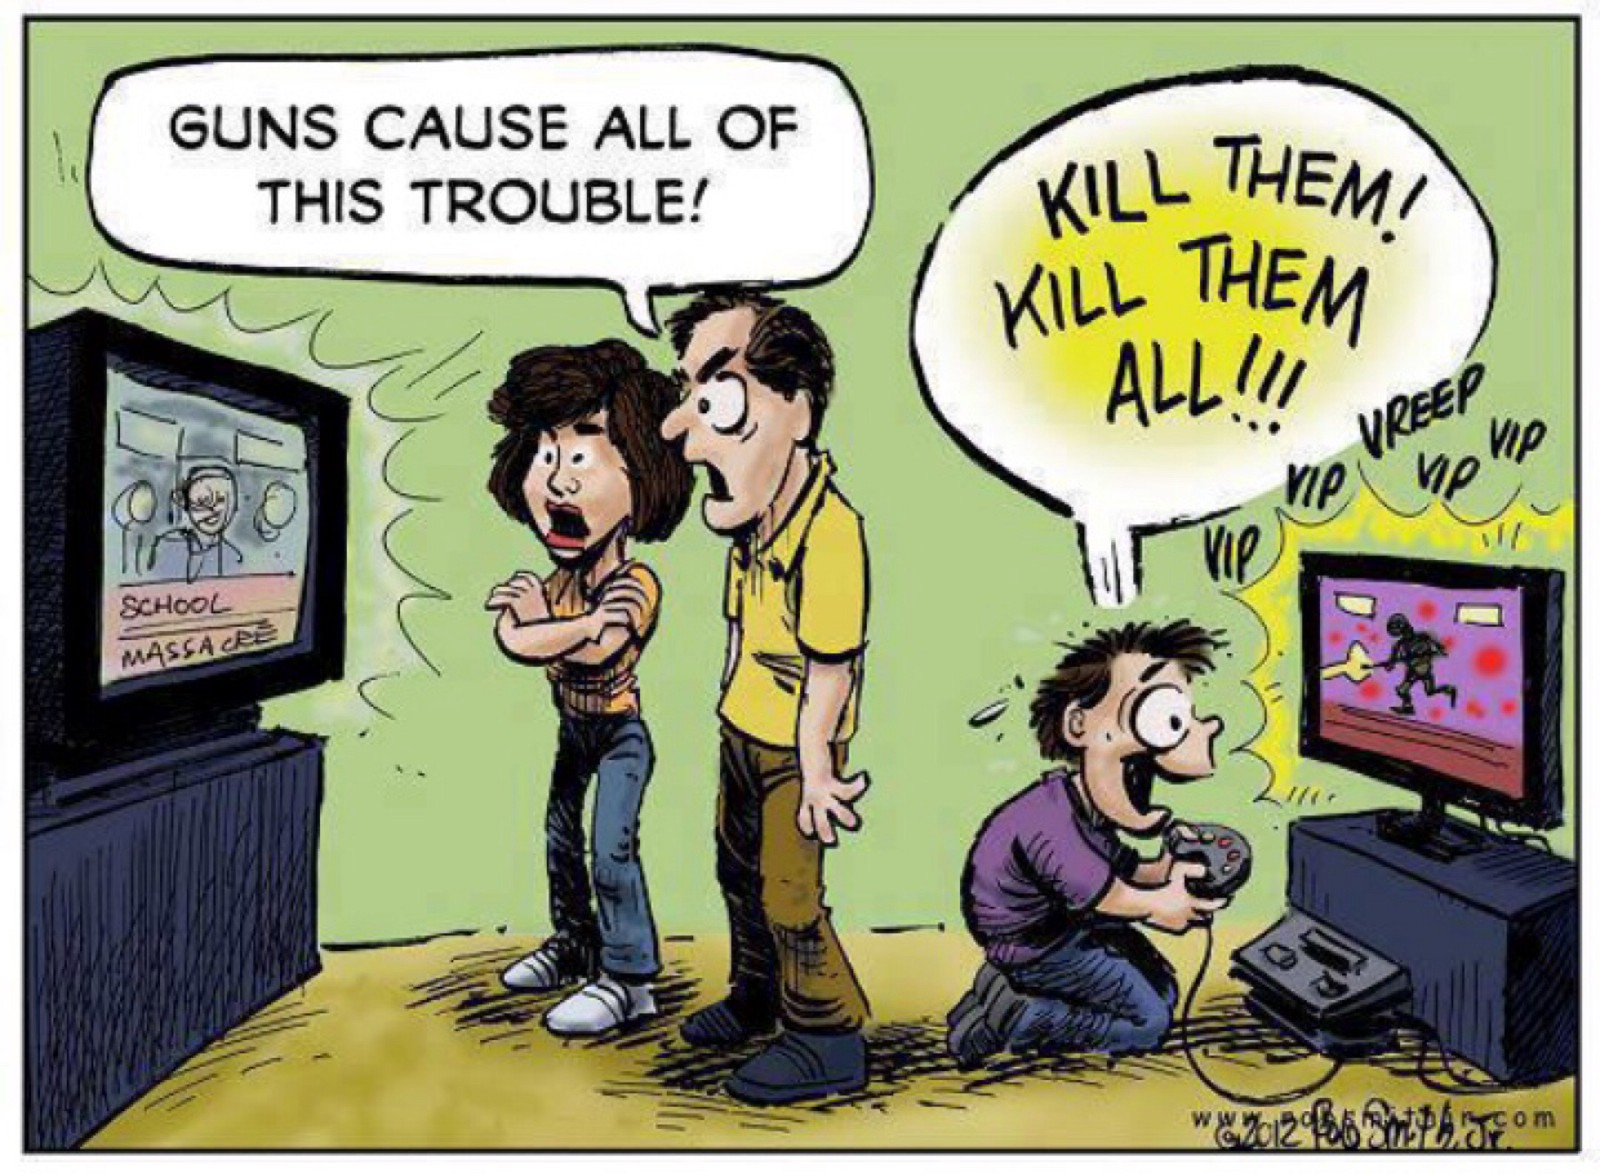 a description of the media that is not totally to blame for the violence in society Violent images on television and in the movies do contribute to greater violence in society sociological studies along with common sense dictate that we do something to reduce the violence in the media before it further damages society.